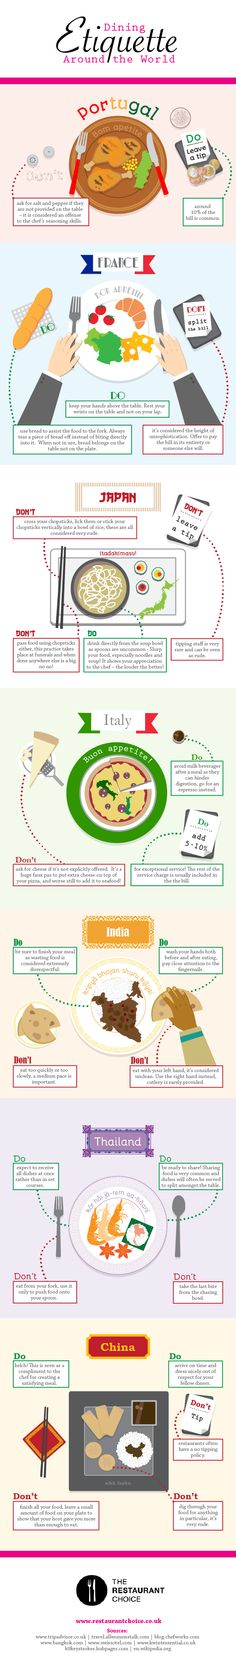 Dinning etiquette around the world. http://impressivemagazine.com/2014/10/12/dining-etiquette-around-the-world-infographic/